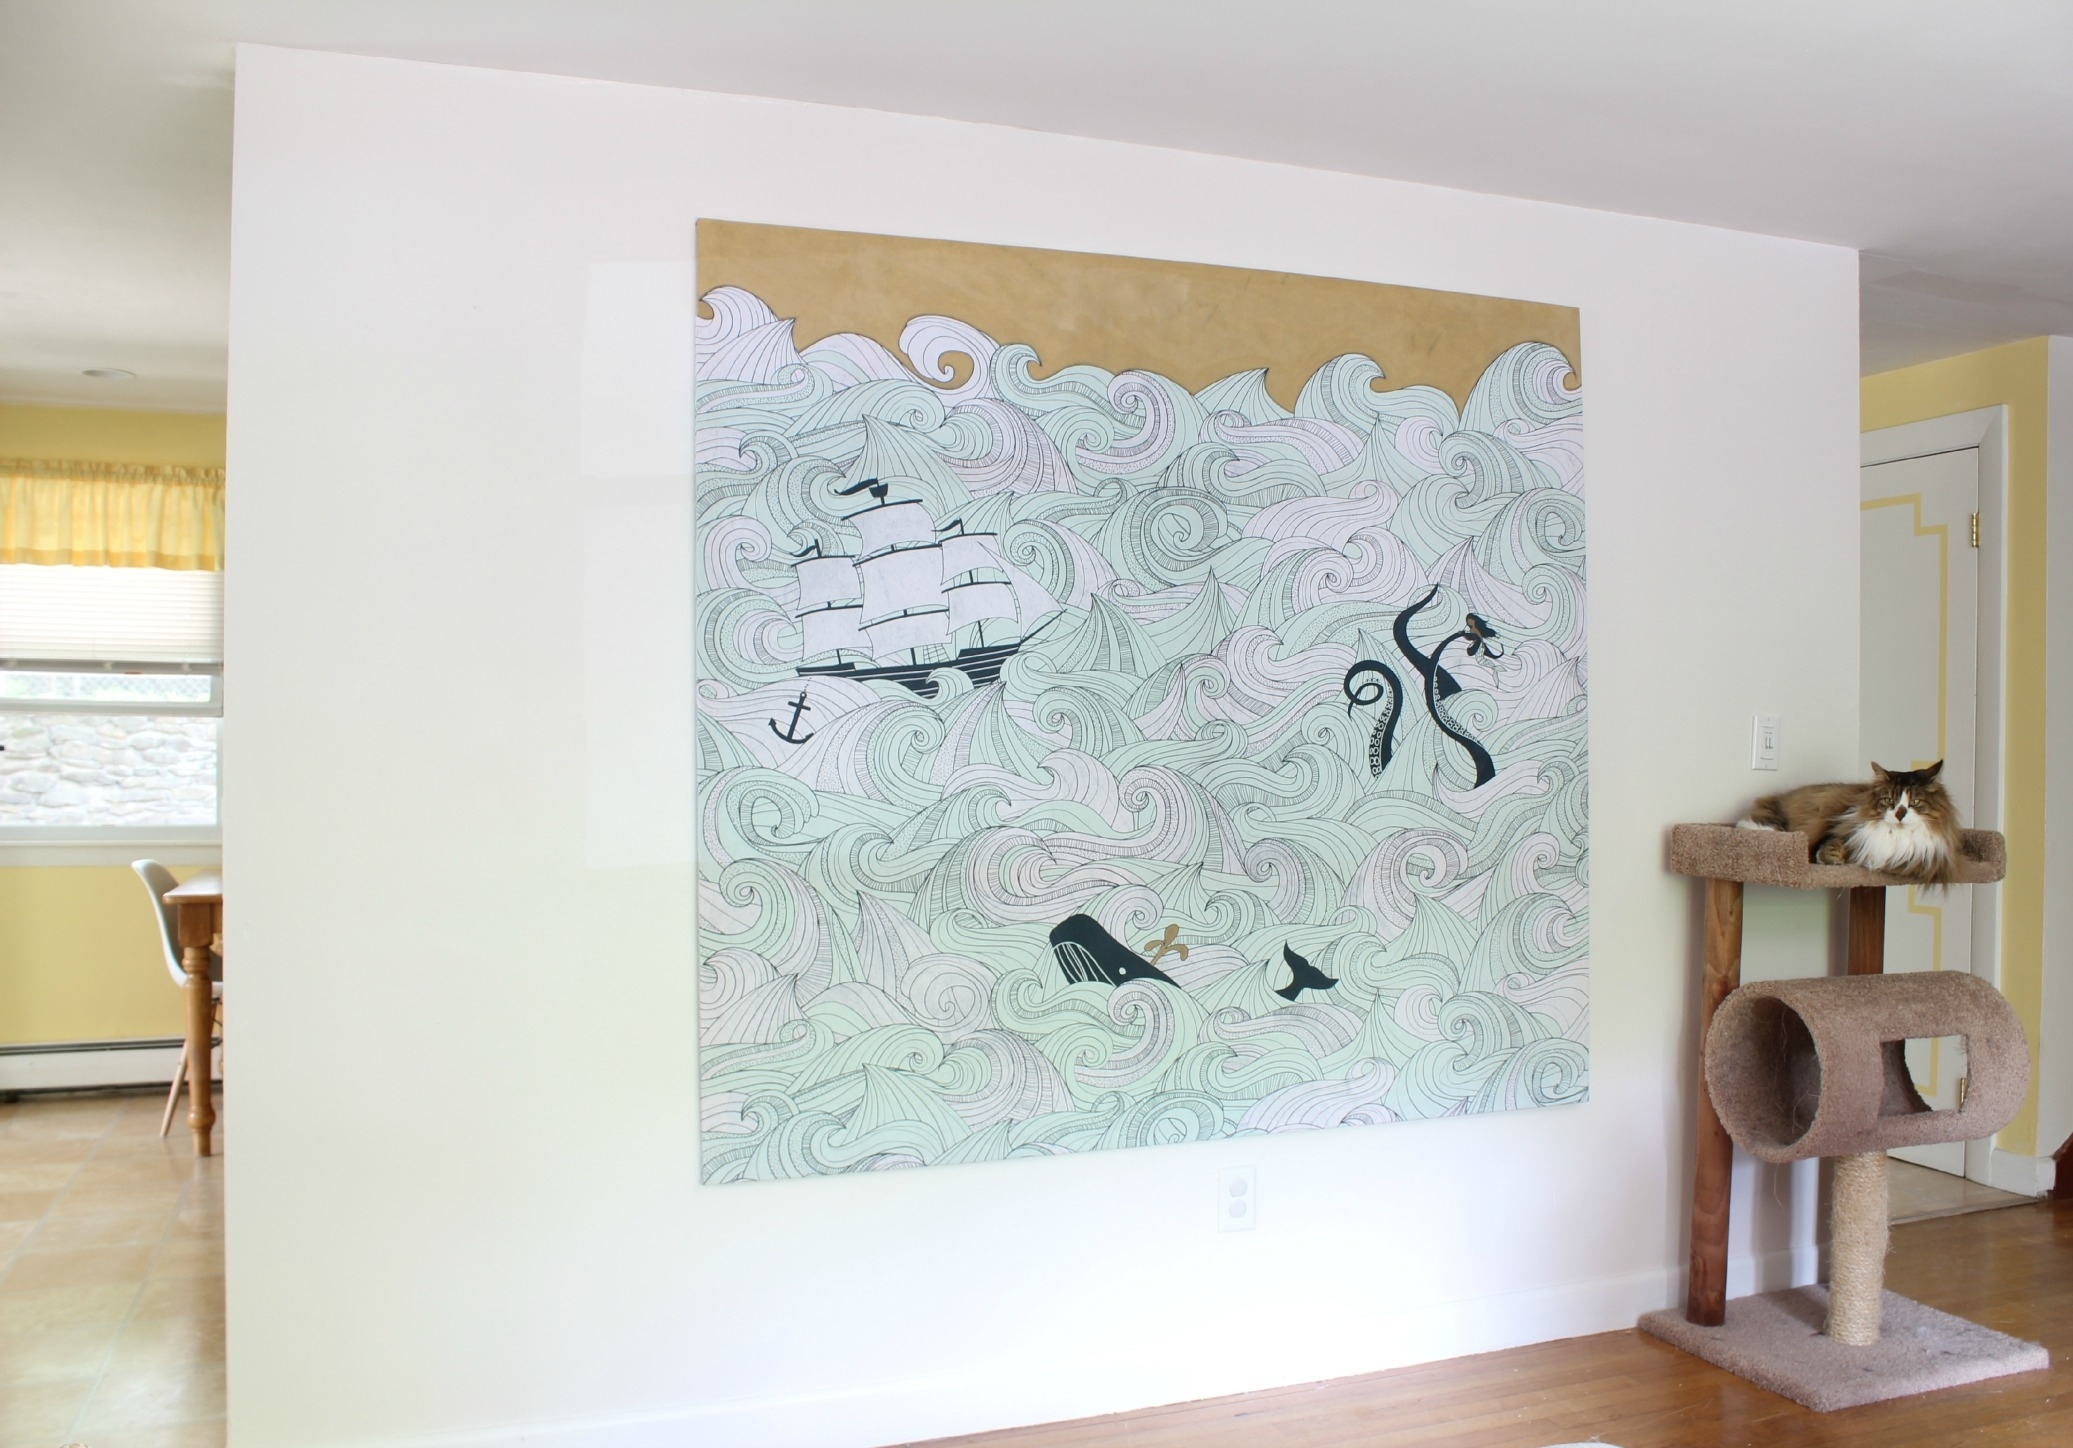 Diy Stretched Fabric Canvas (With A Shower Curtain!) | Stephanie With Regard To Most Recently Released Large Fabric Wall Art (View 4 of 15)